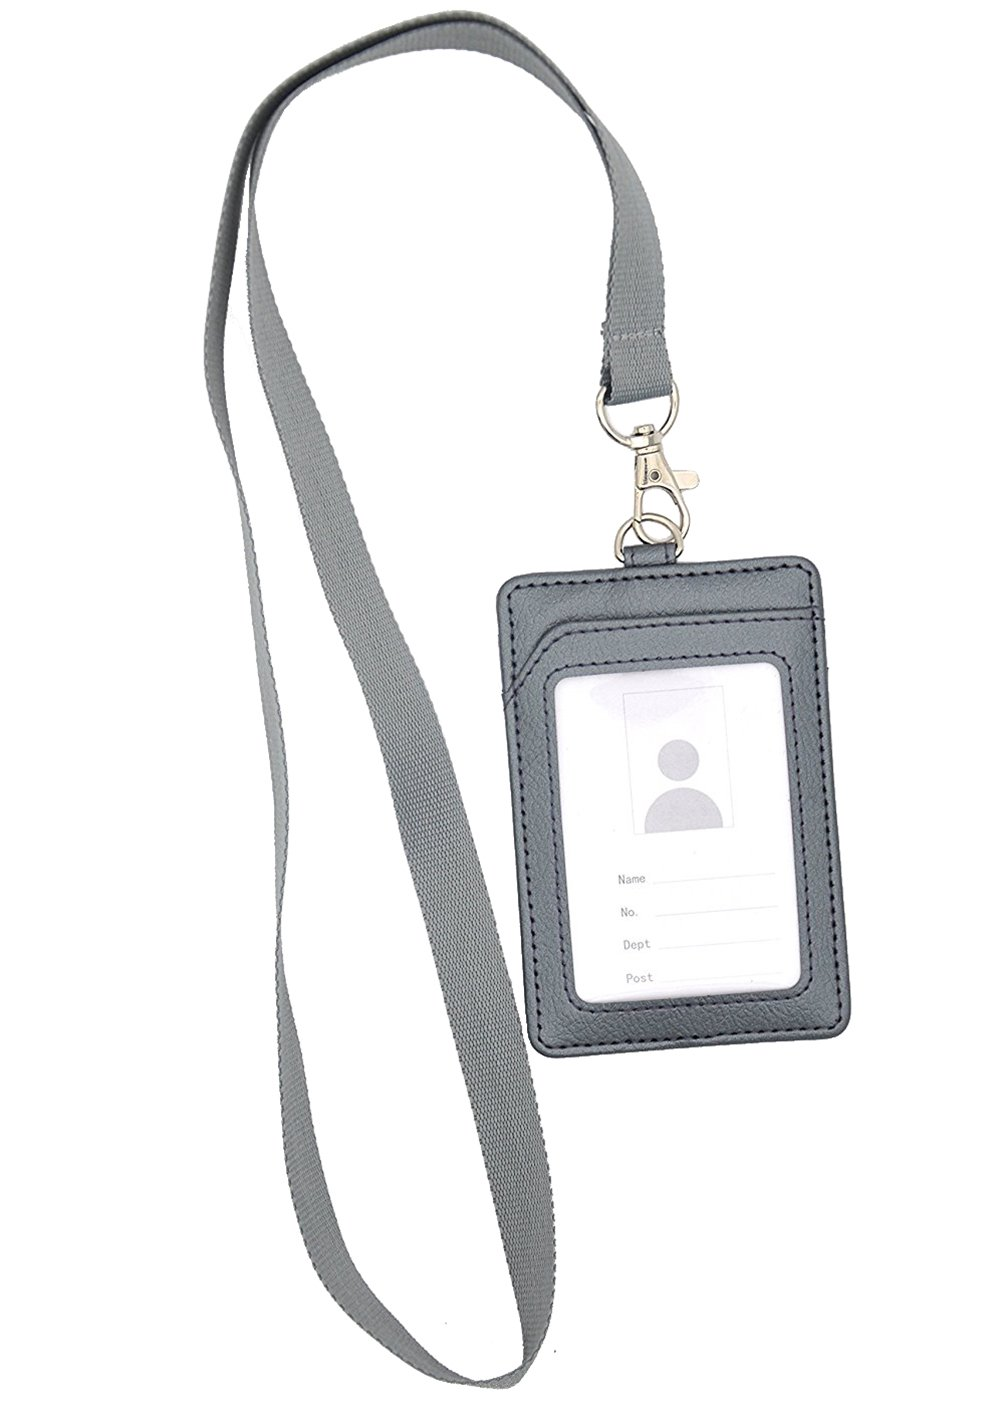 Portabadge,Bird Fiy Vertical Style PU Leather ID Badge Holder and Neck Lanyard argento